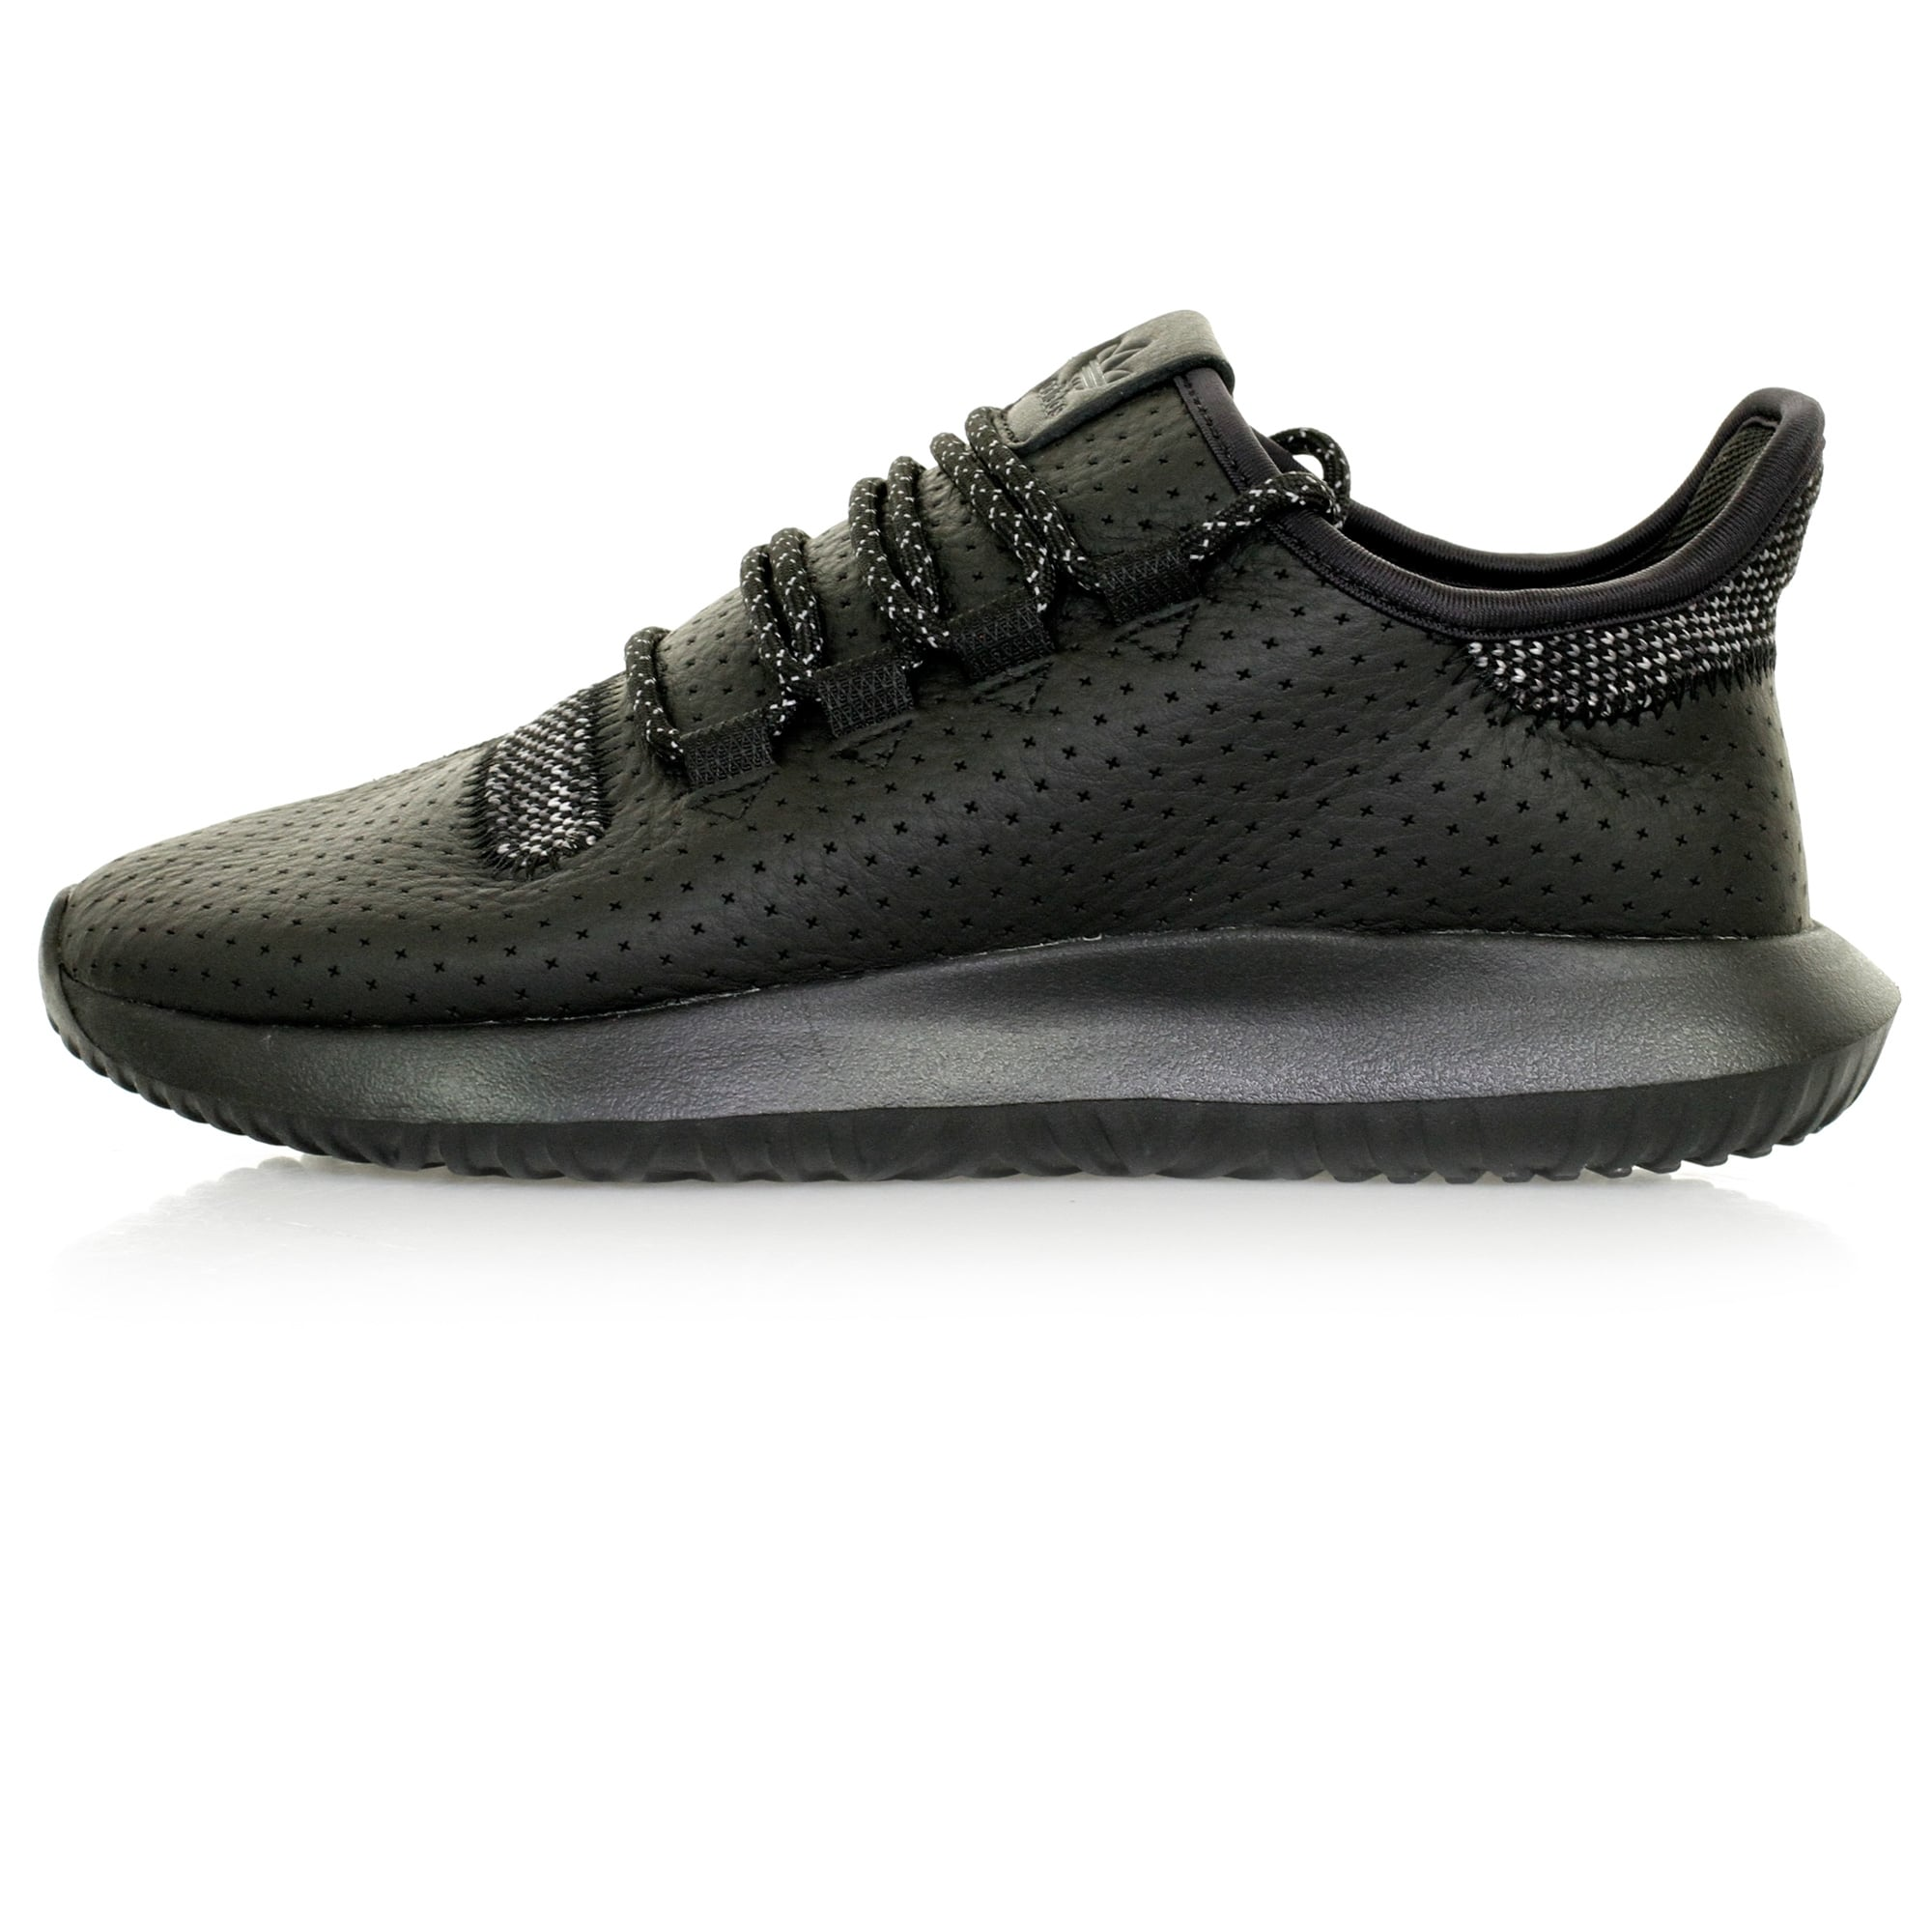 b53b9a173cd24 Adidas Nmd Shoes Buy Online What Size Am I In Mens Shoes